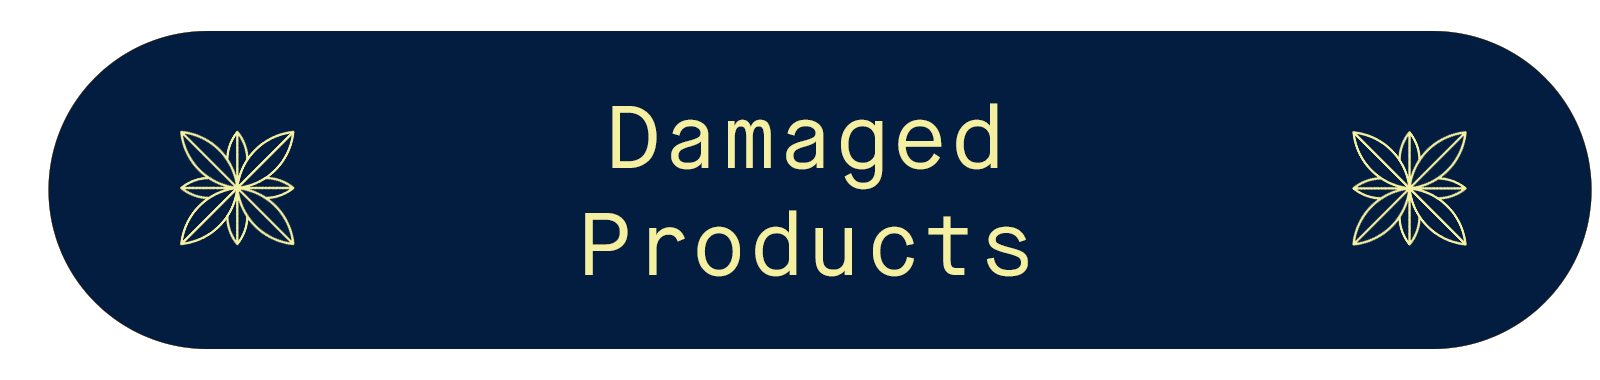 Damaged Products